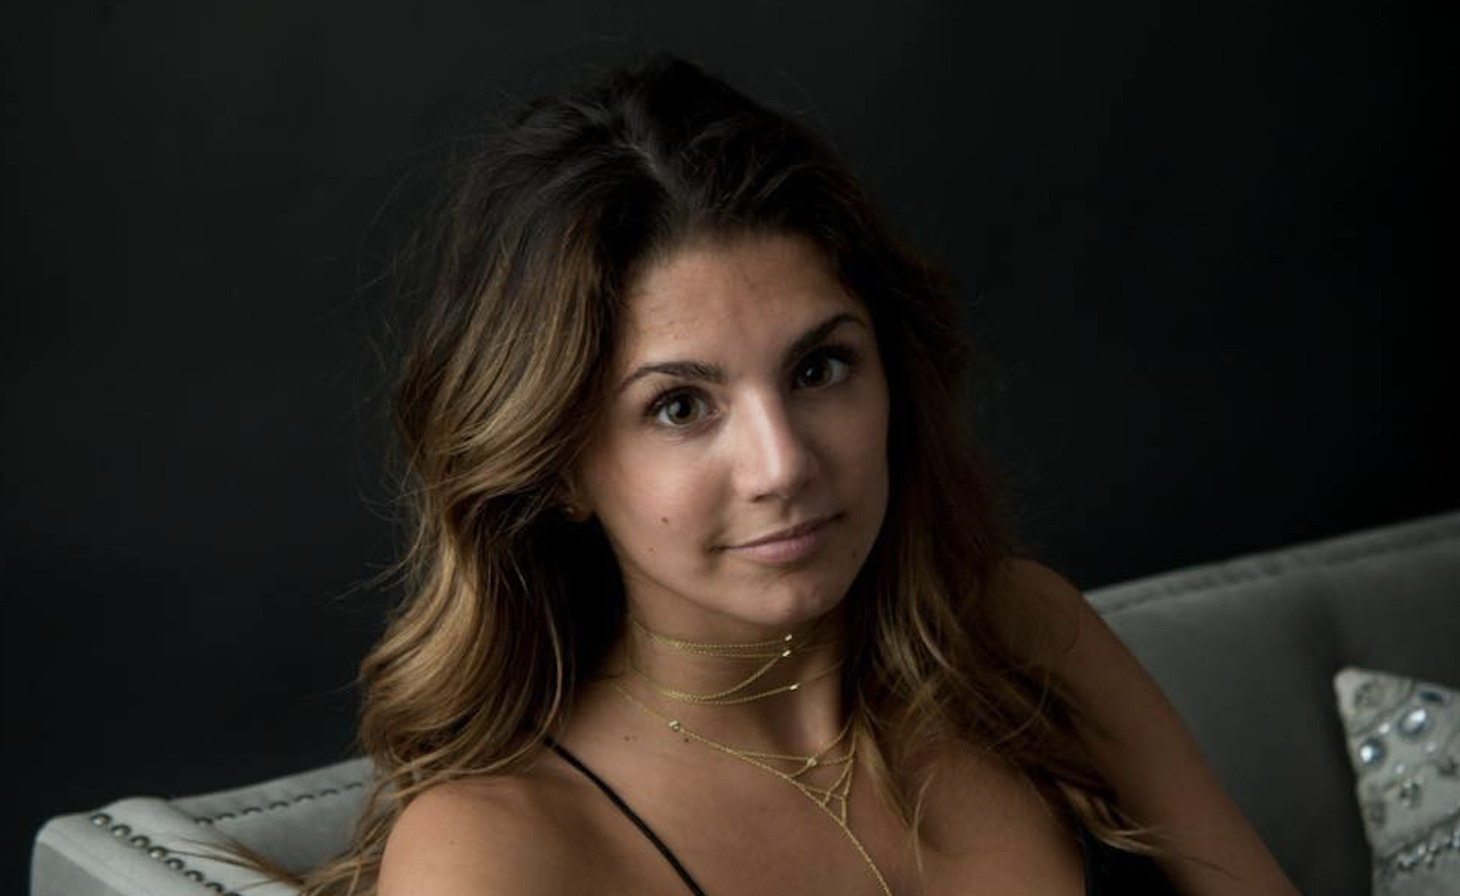 Alexis Mazza sitting on a grey sofa wearing a necklace